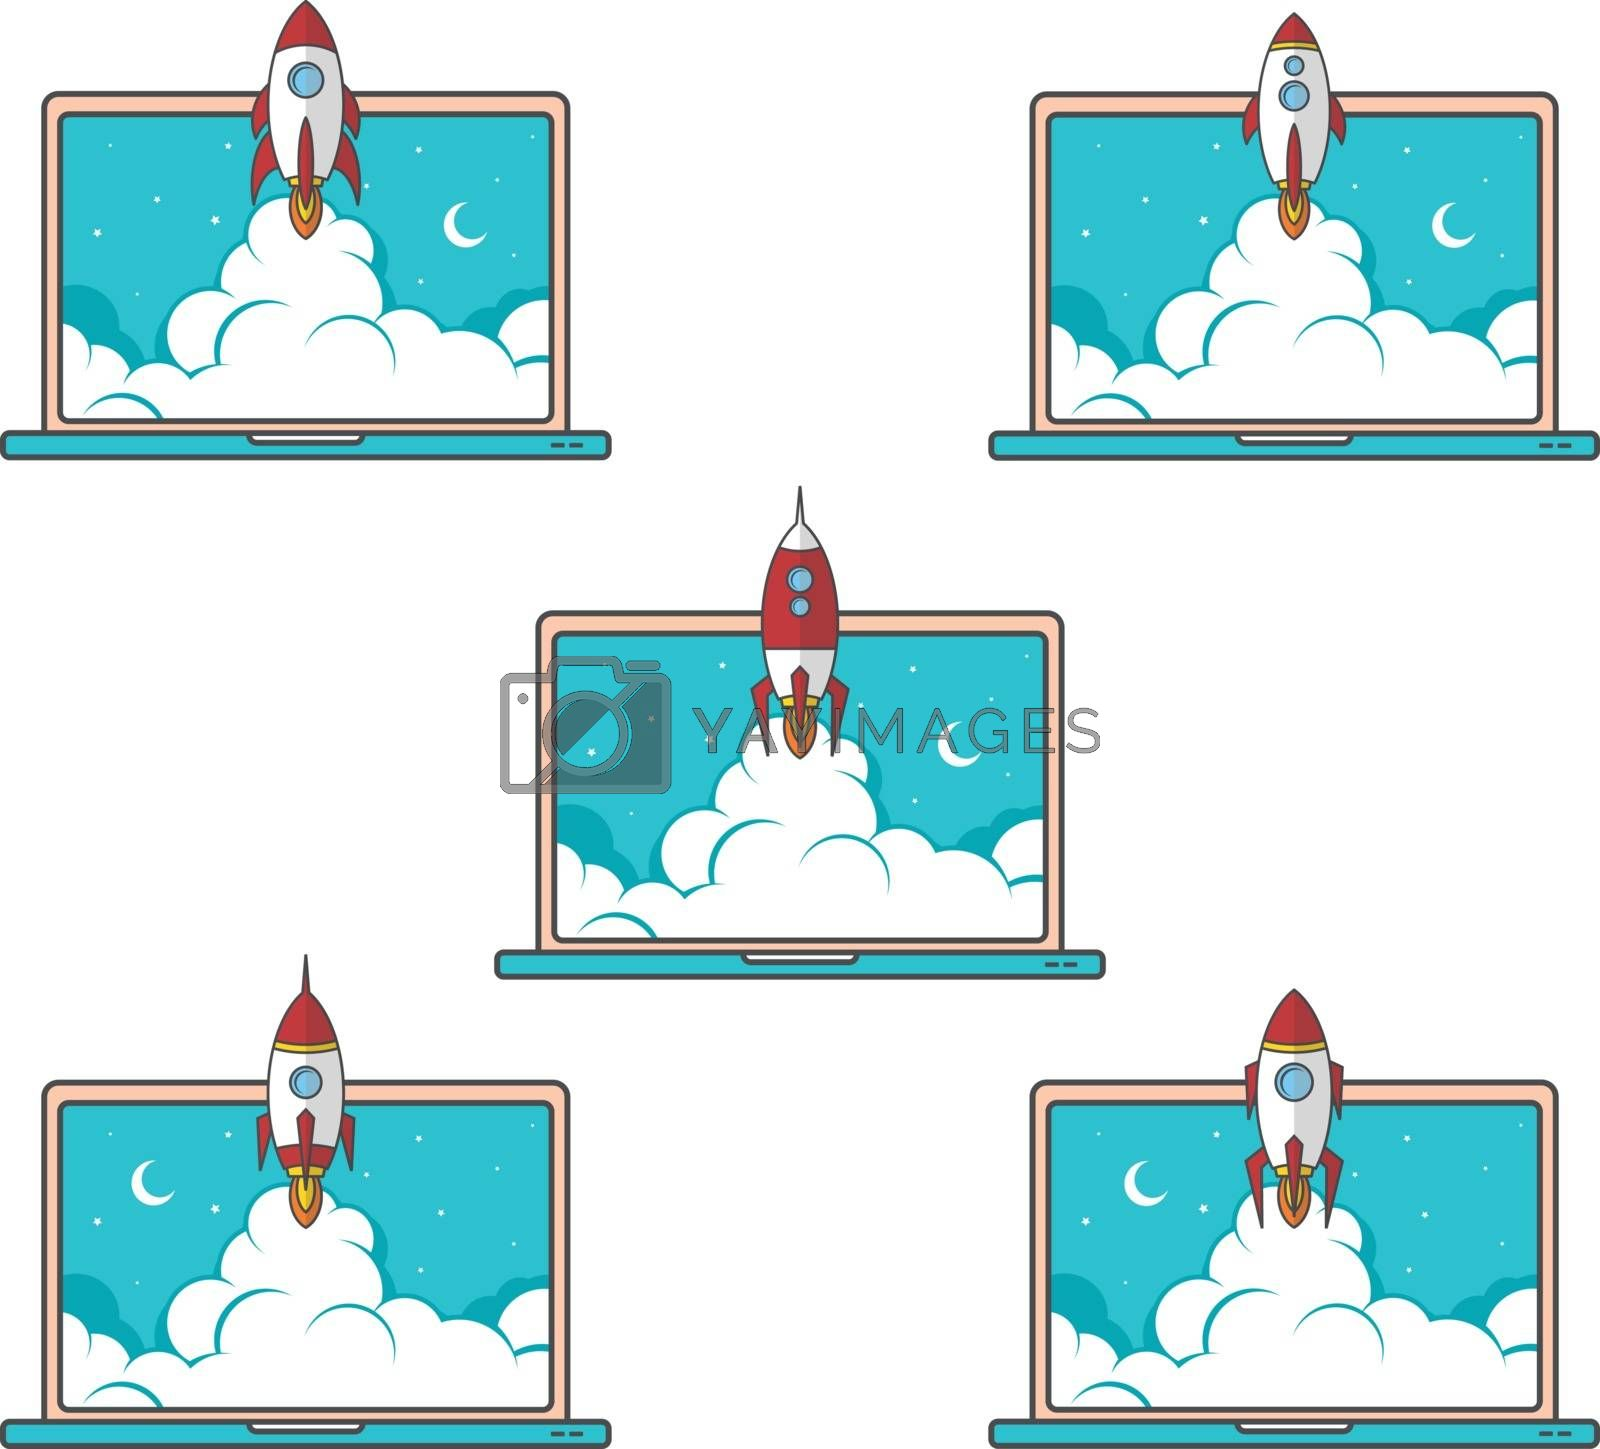 Royalty free image of laptop notebook rocket booster vector set collection by vector1st